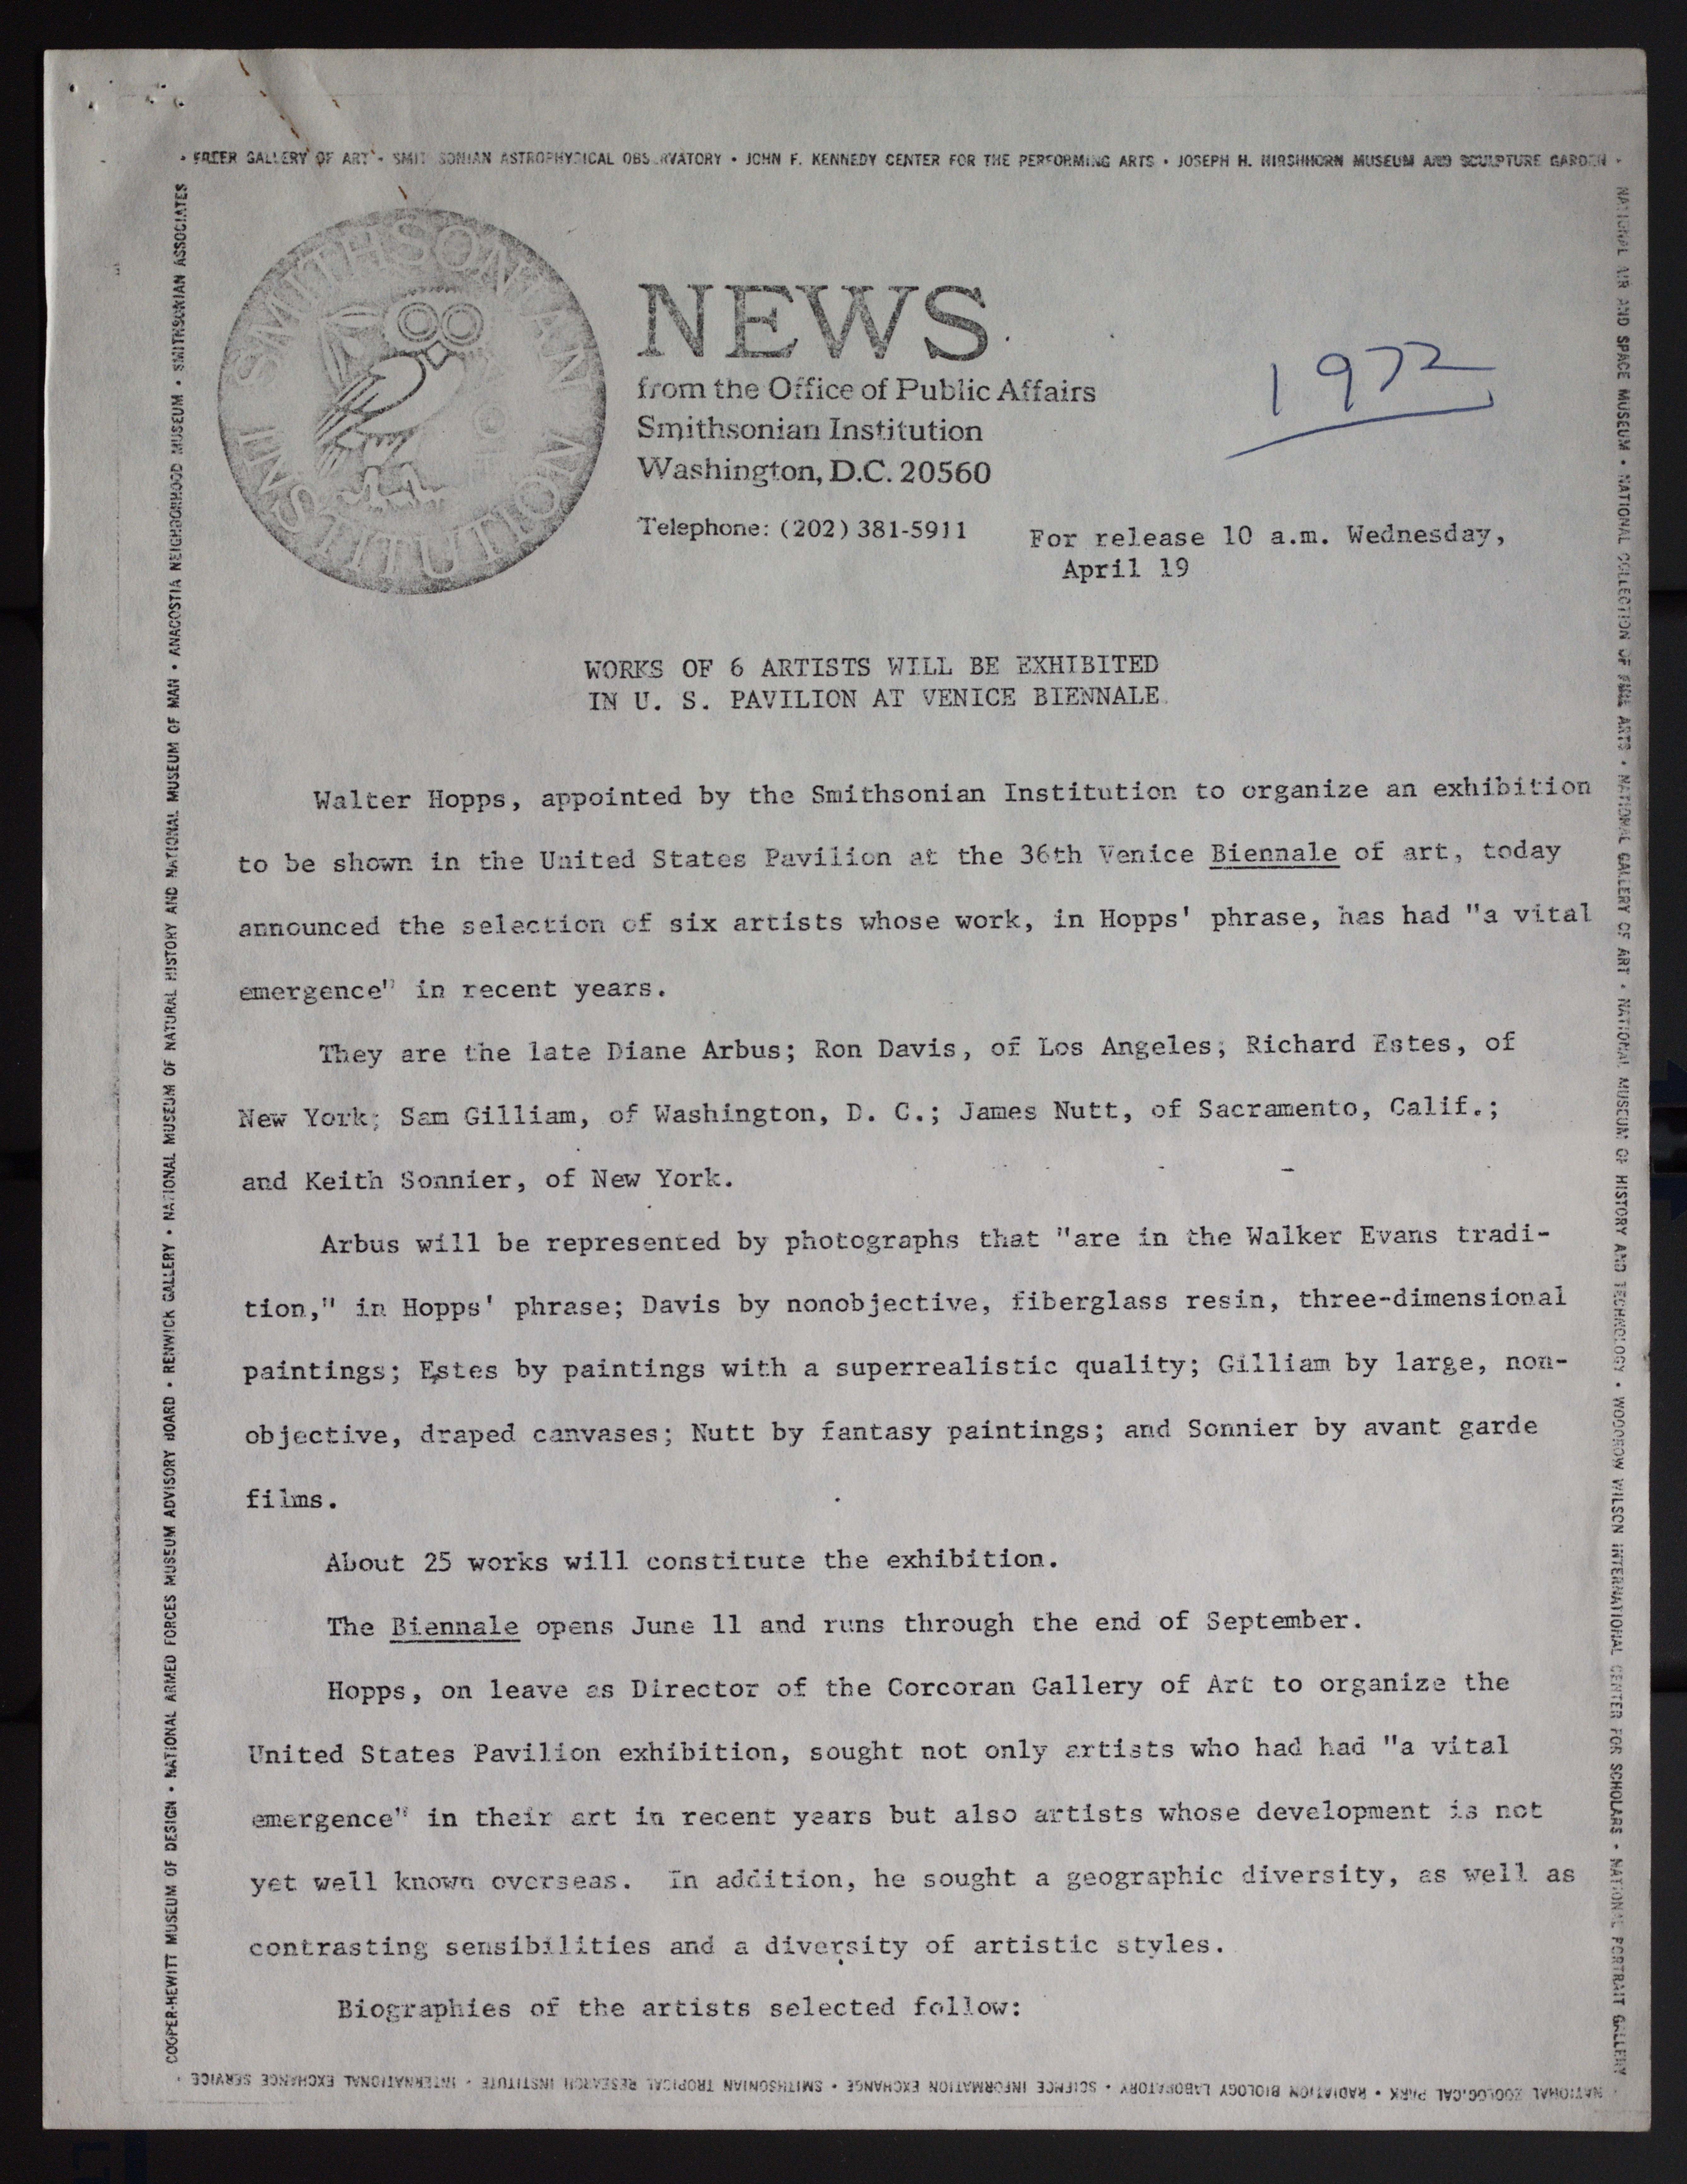 Scan of a full page press release, containing the old Owl Smithsonian logo in the upper left corner.